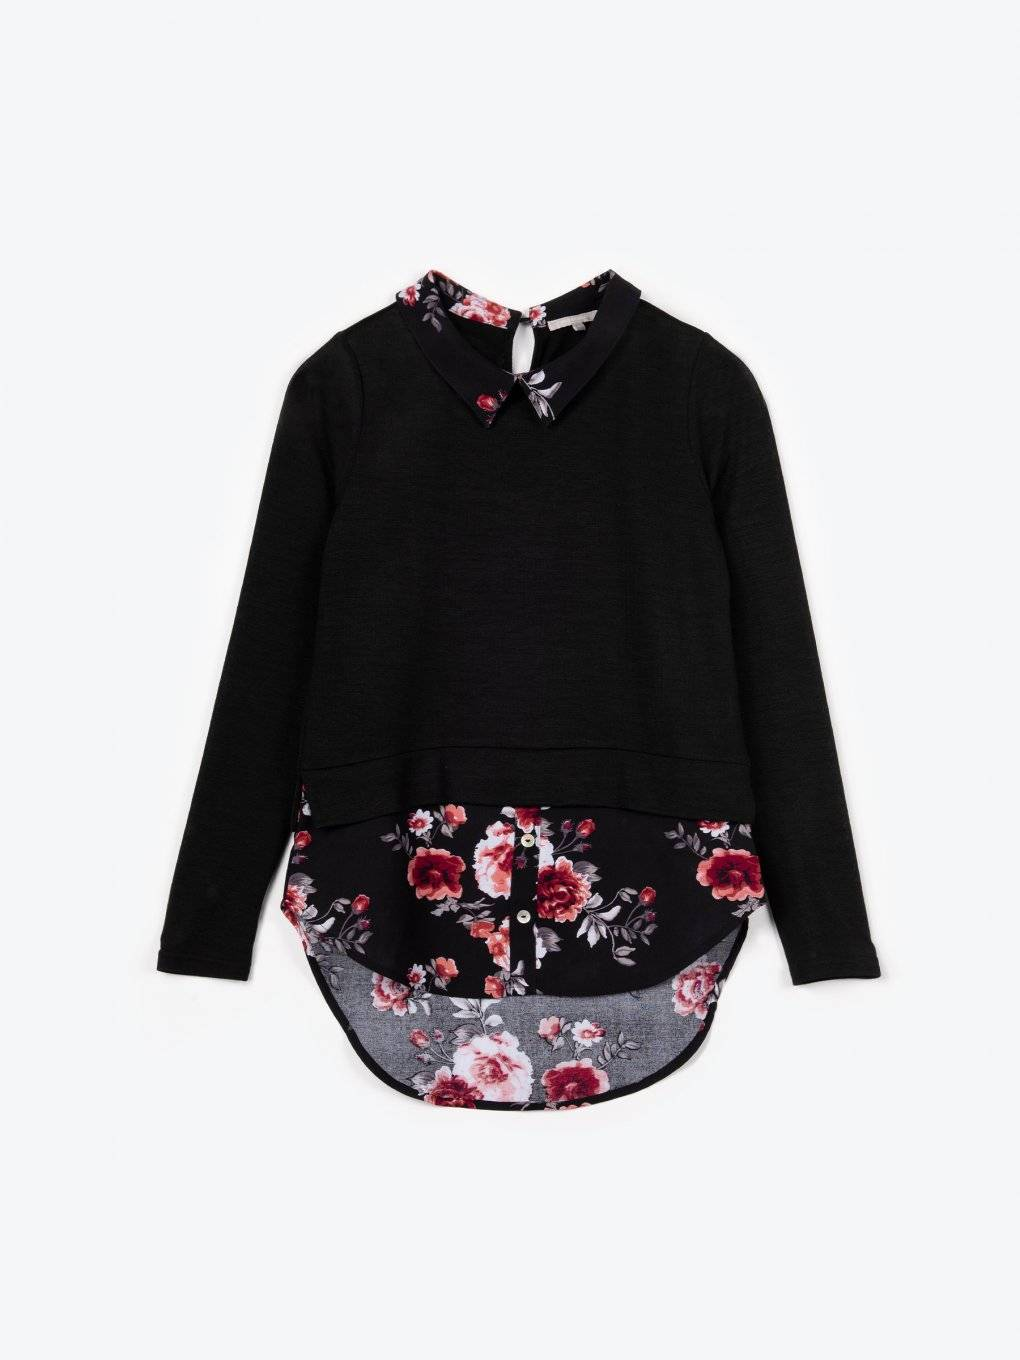 Jumper with floral print shirt details